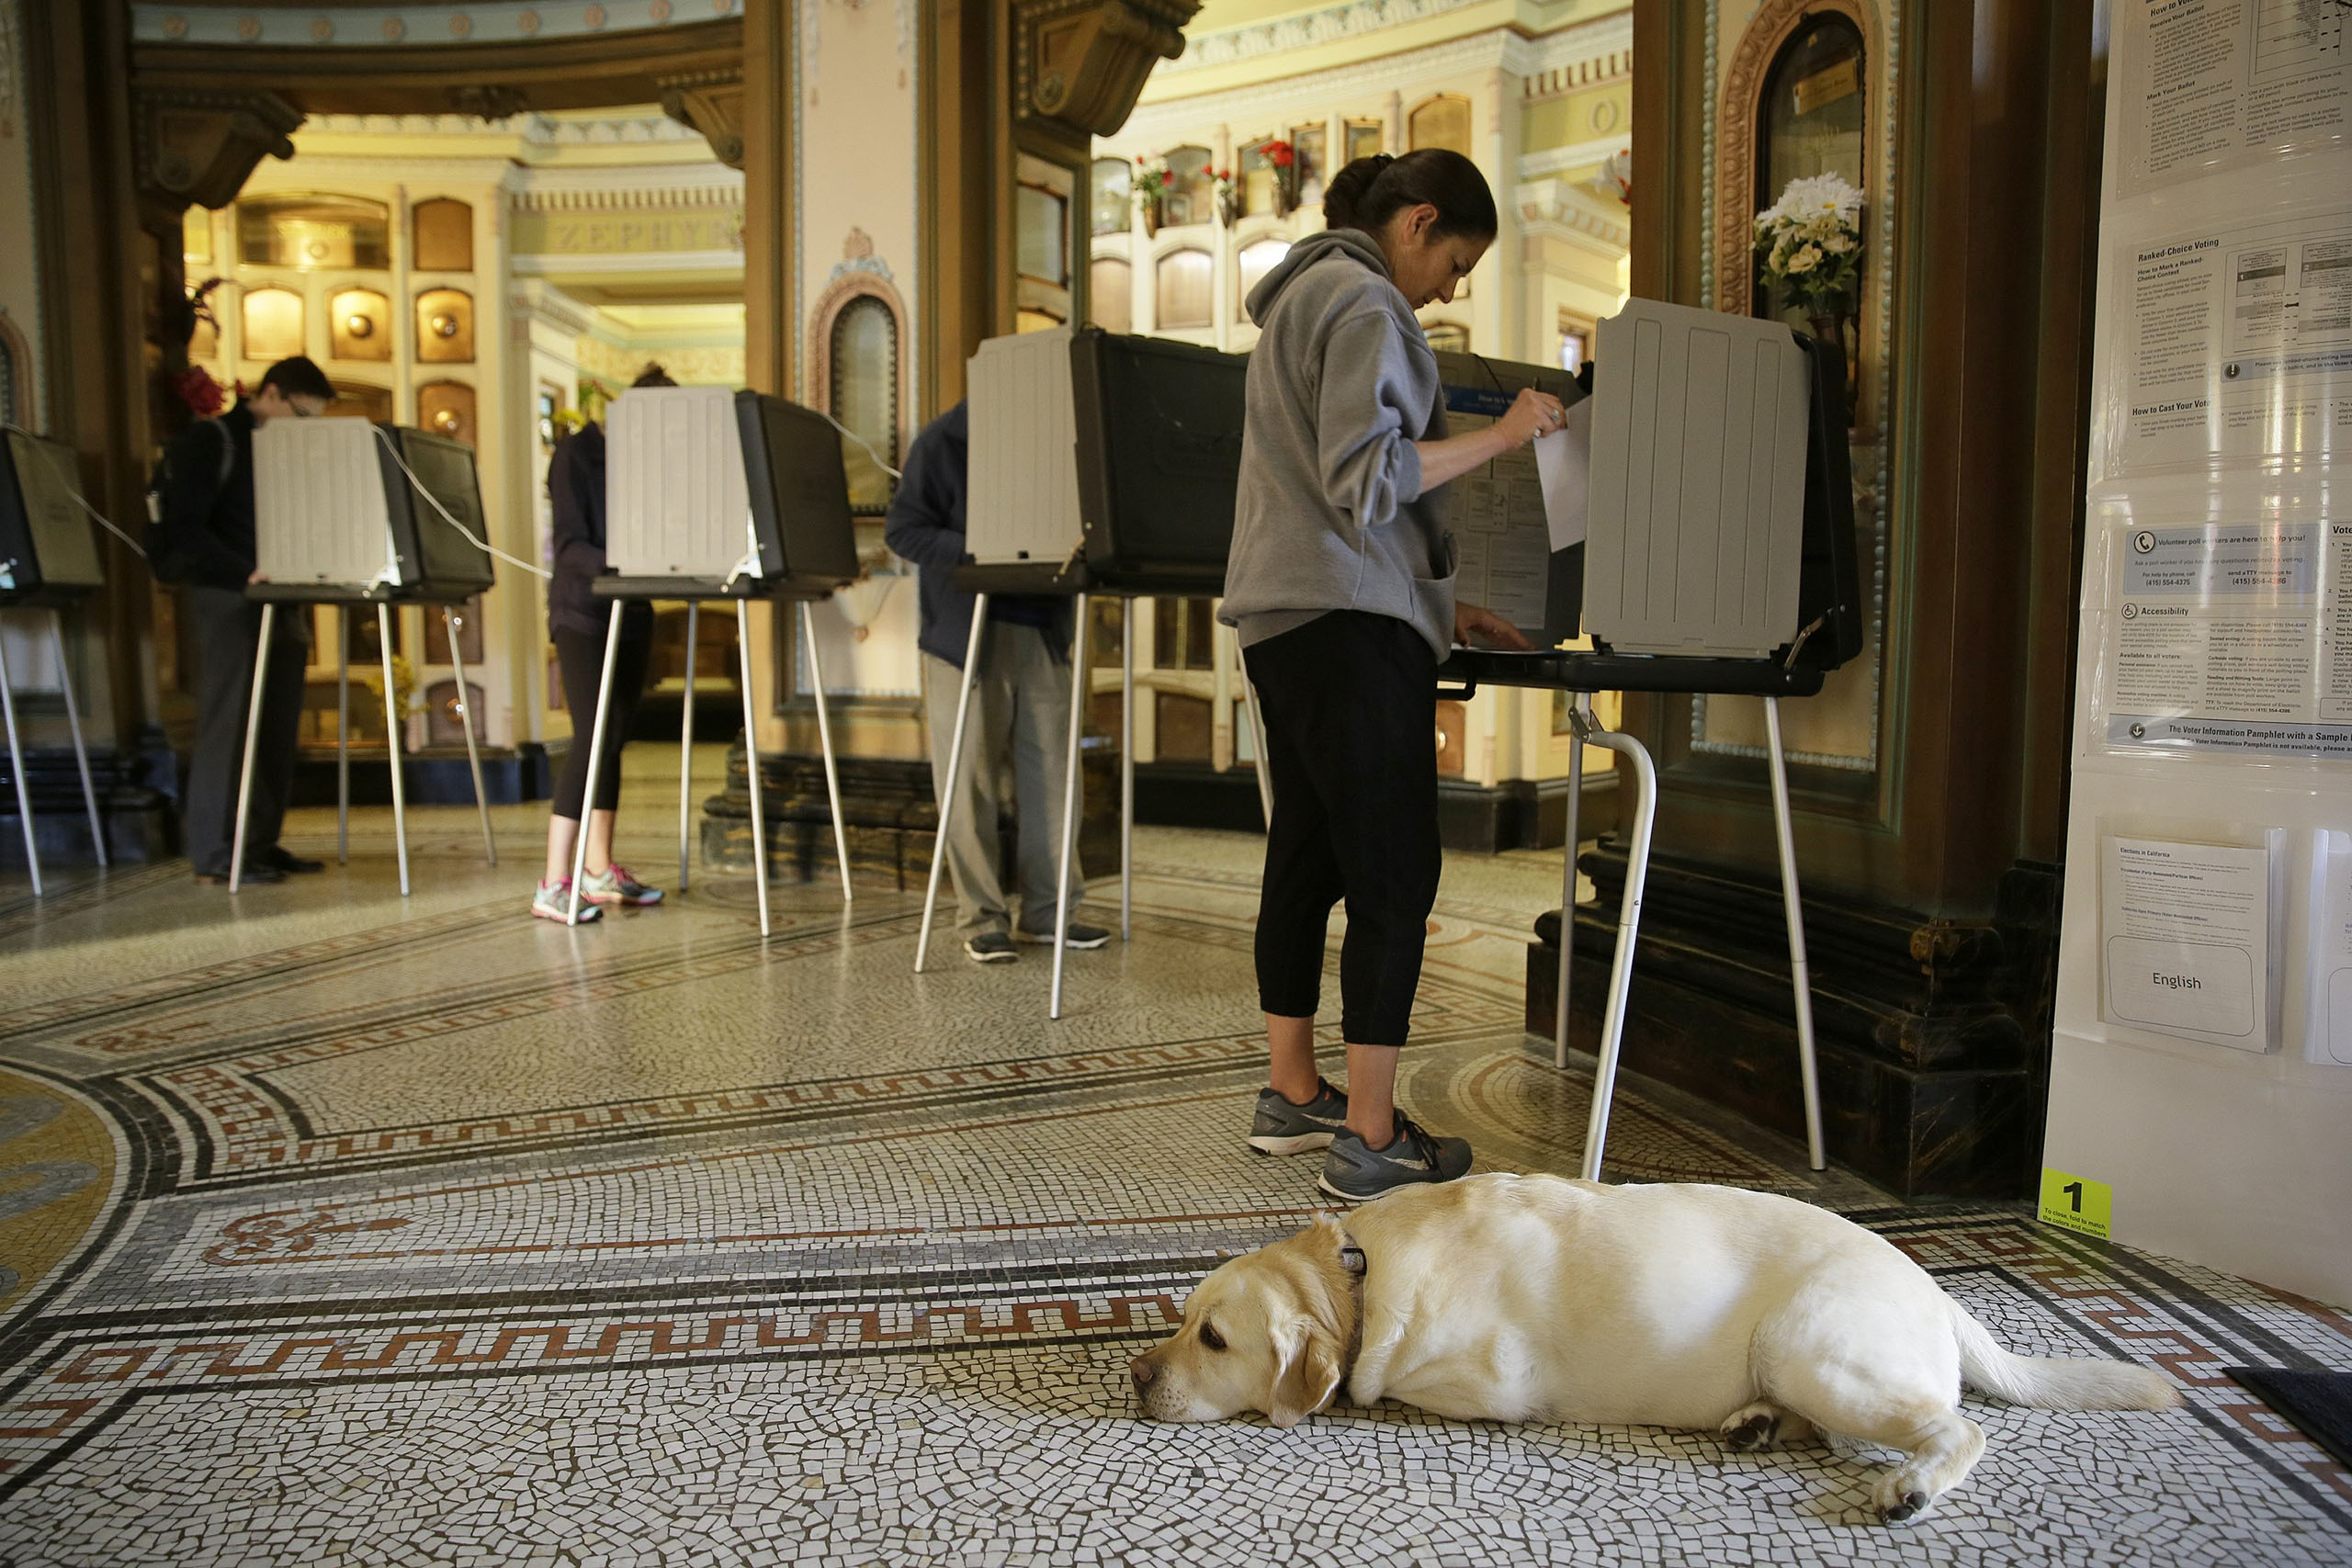 Libby Benedict, right, votes at the Neptune Society Columbarium as her dog, Stella, looks on, on Nov. 8, 2016, in San Francisco.